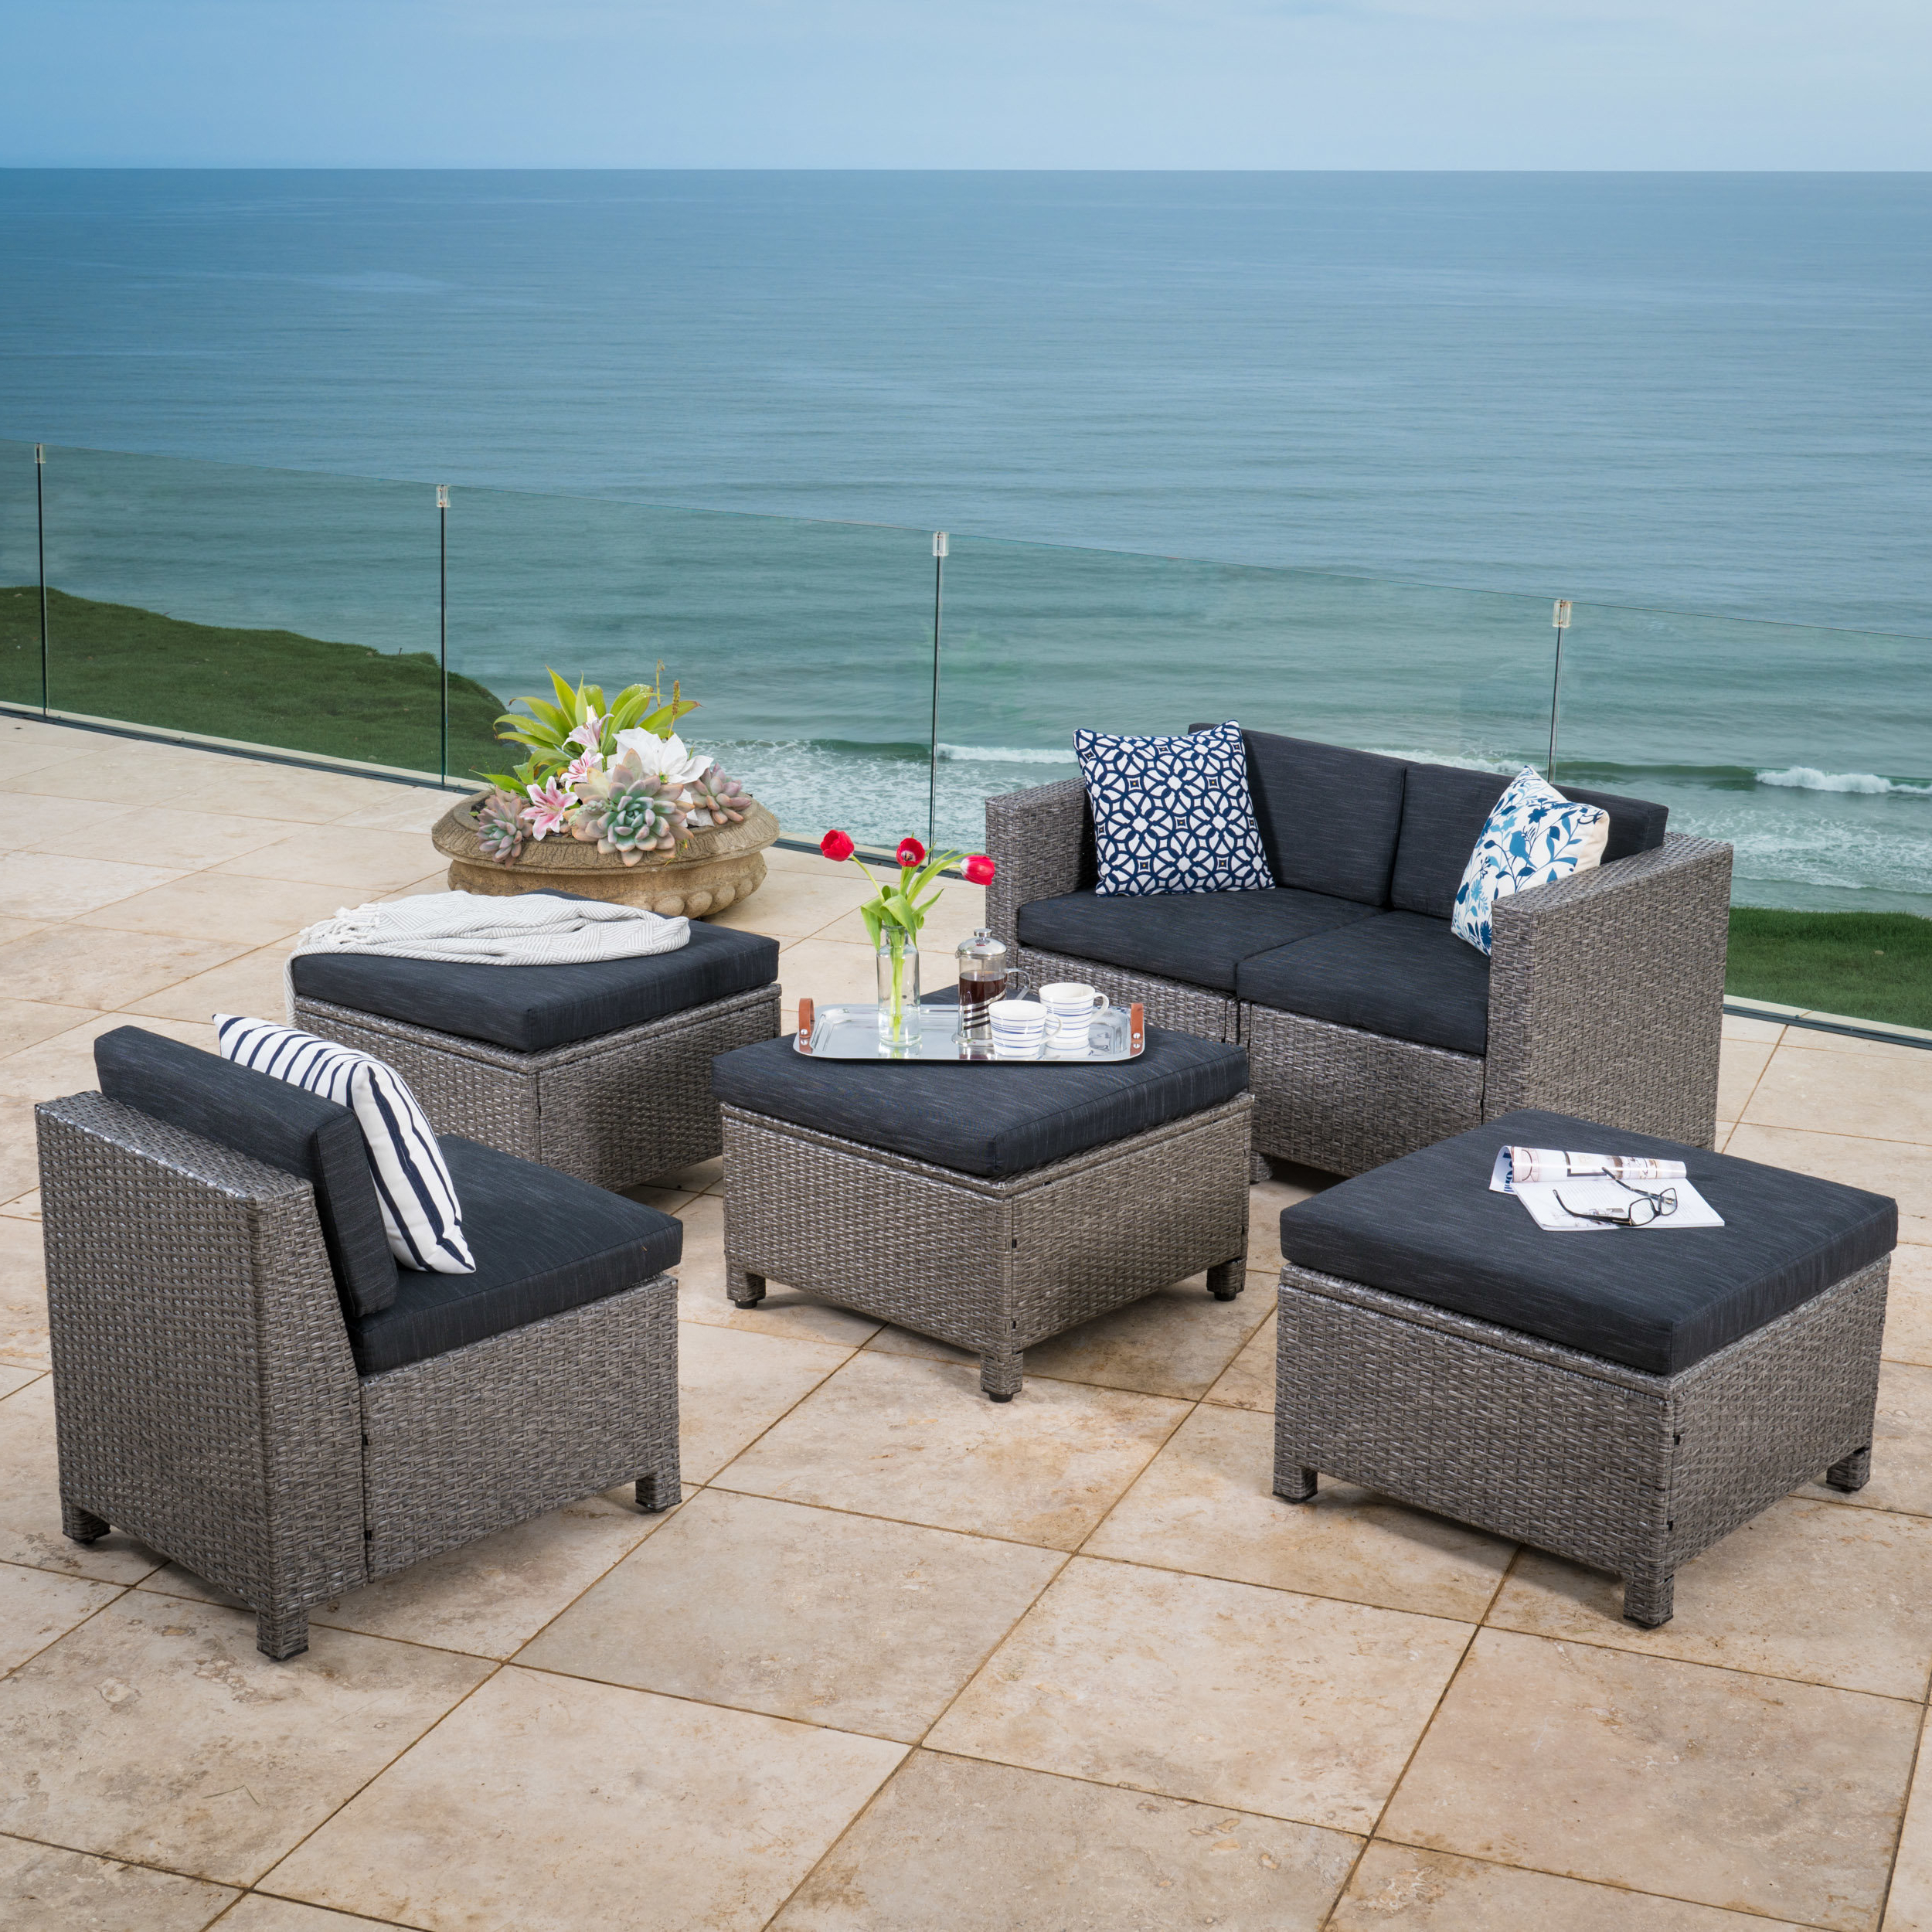 Furst Patio Sofas With Cushion Within 2019 Furst 6 Piece Sofa Set With Cushions (View 11 of 20)